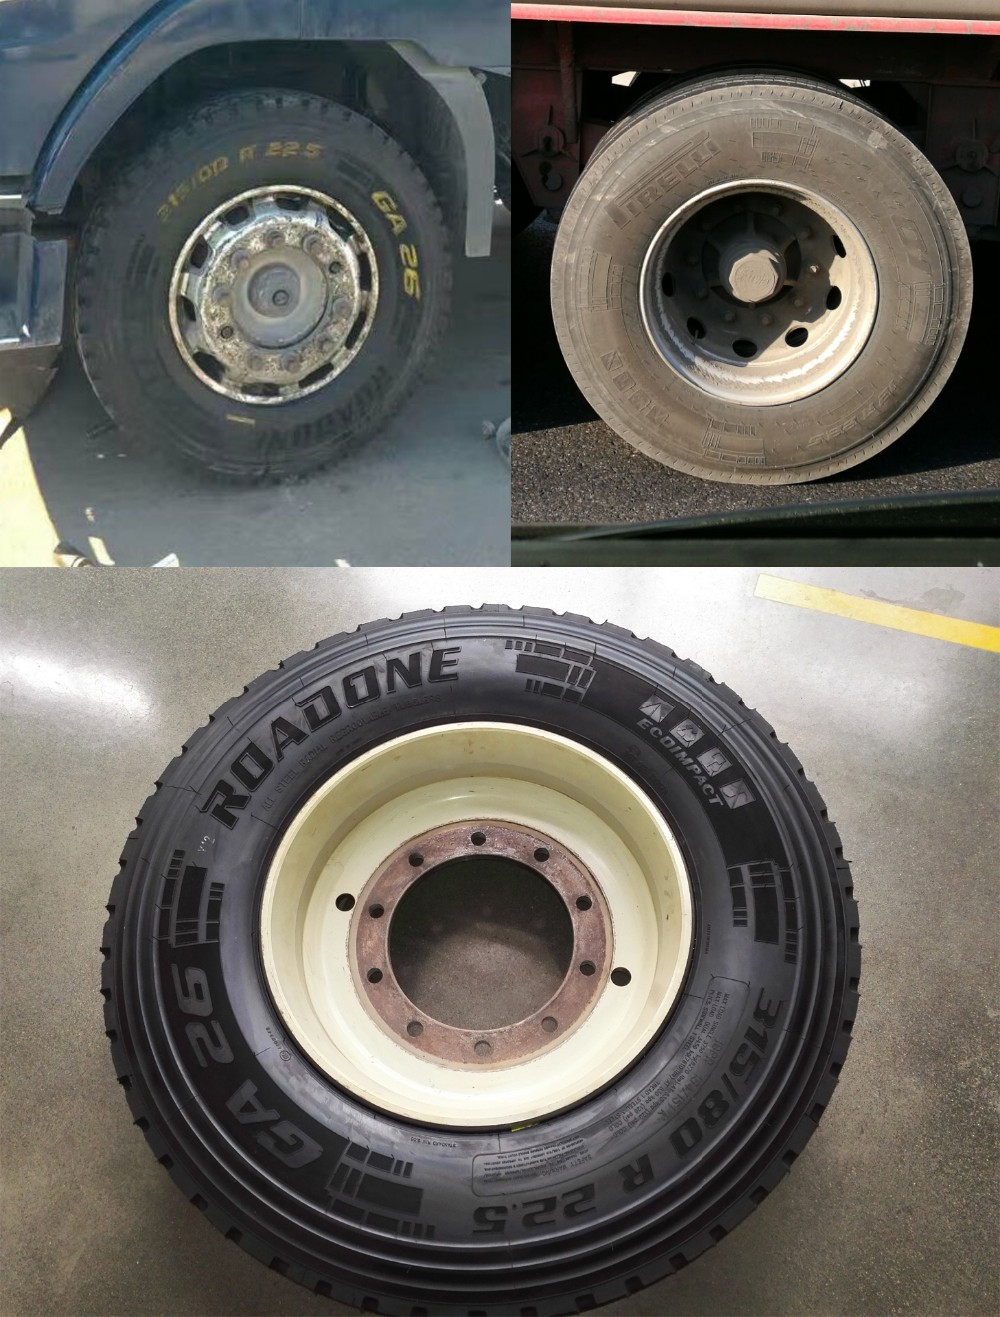 Top quality Roadone brand truck tire with 300,000kms & 4 years warranty